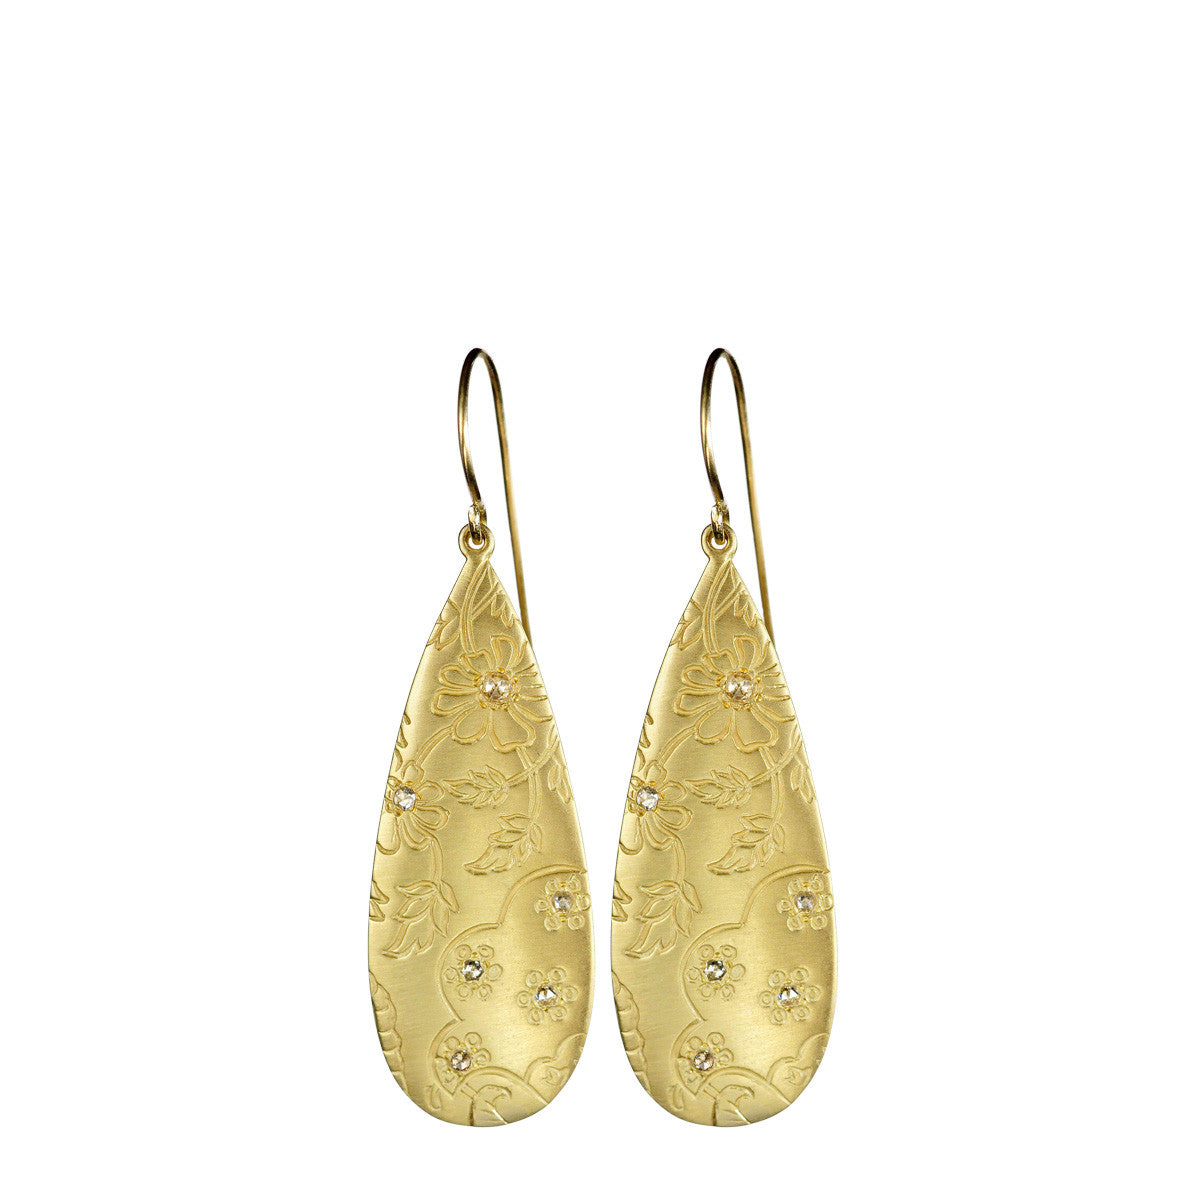 18K Gold Slim Teardrop Paisley Earrings with Diamonds